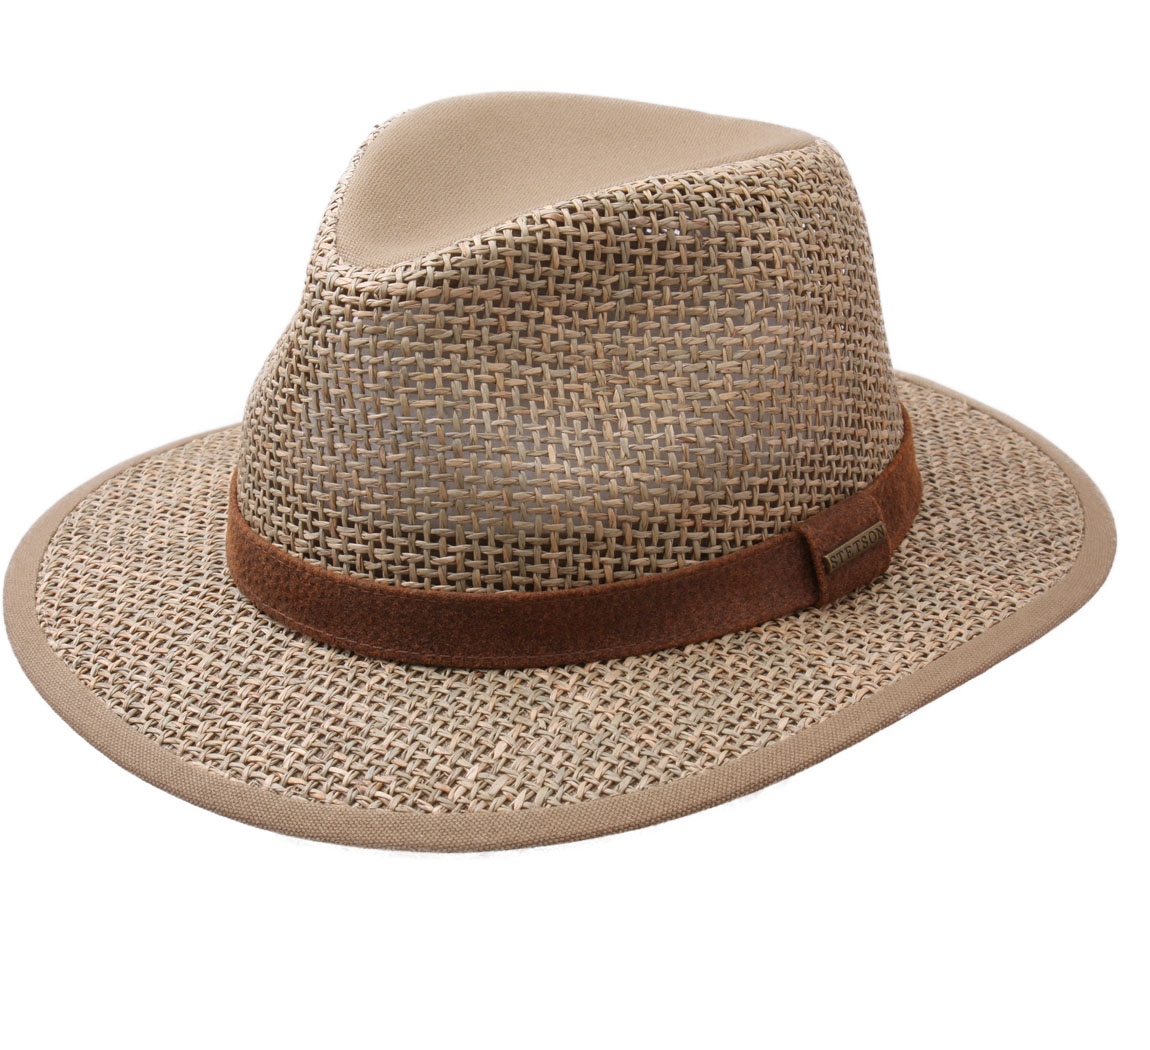 Medfield Seagrass - Hats Stetson 7860f51c3ff3